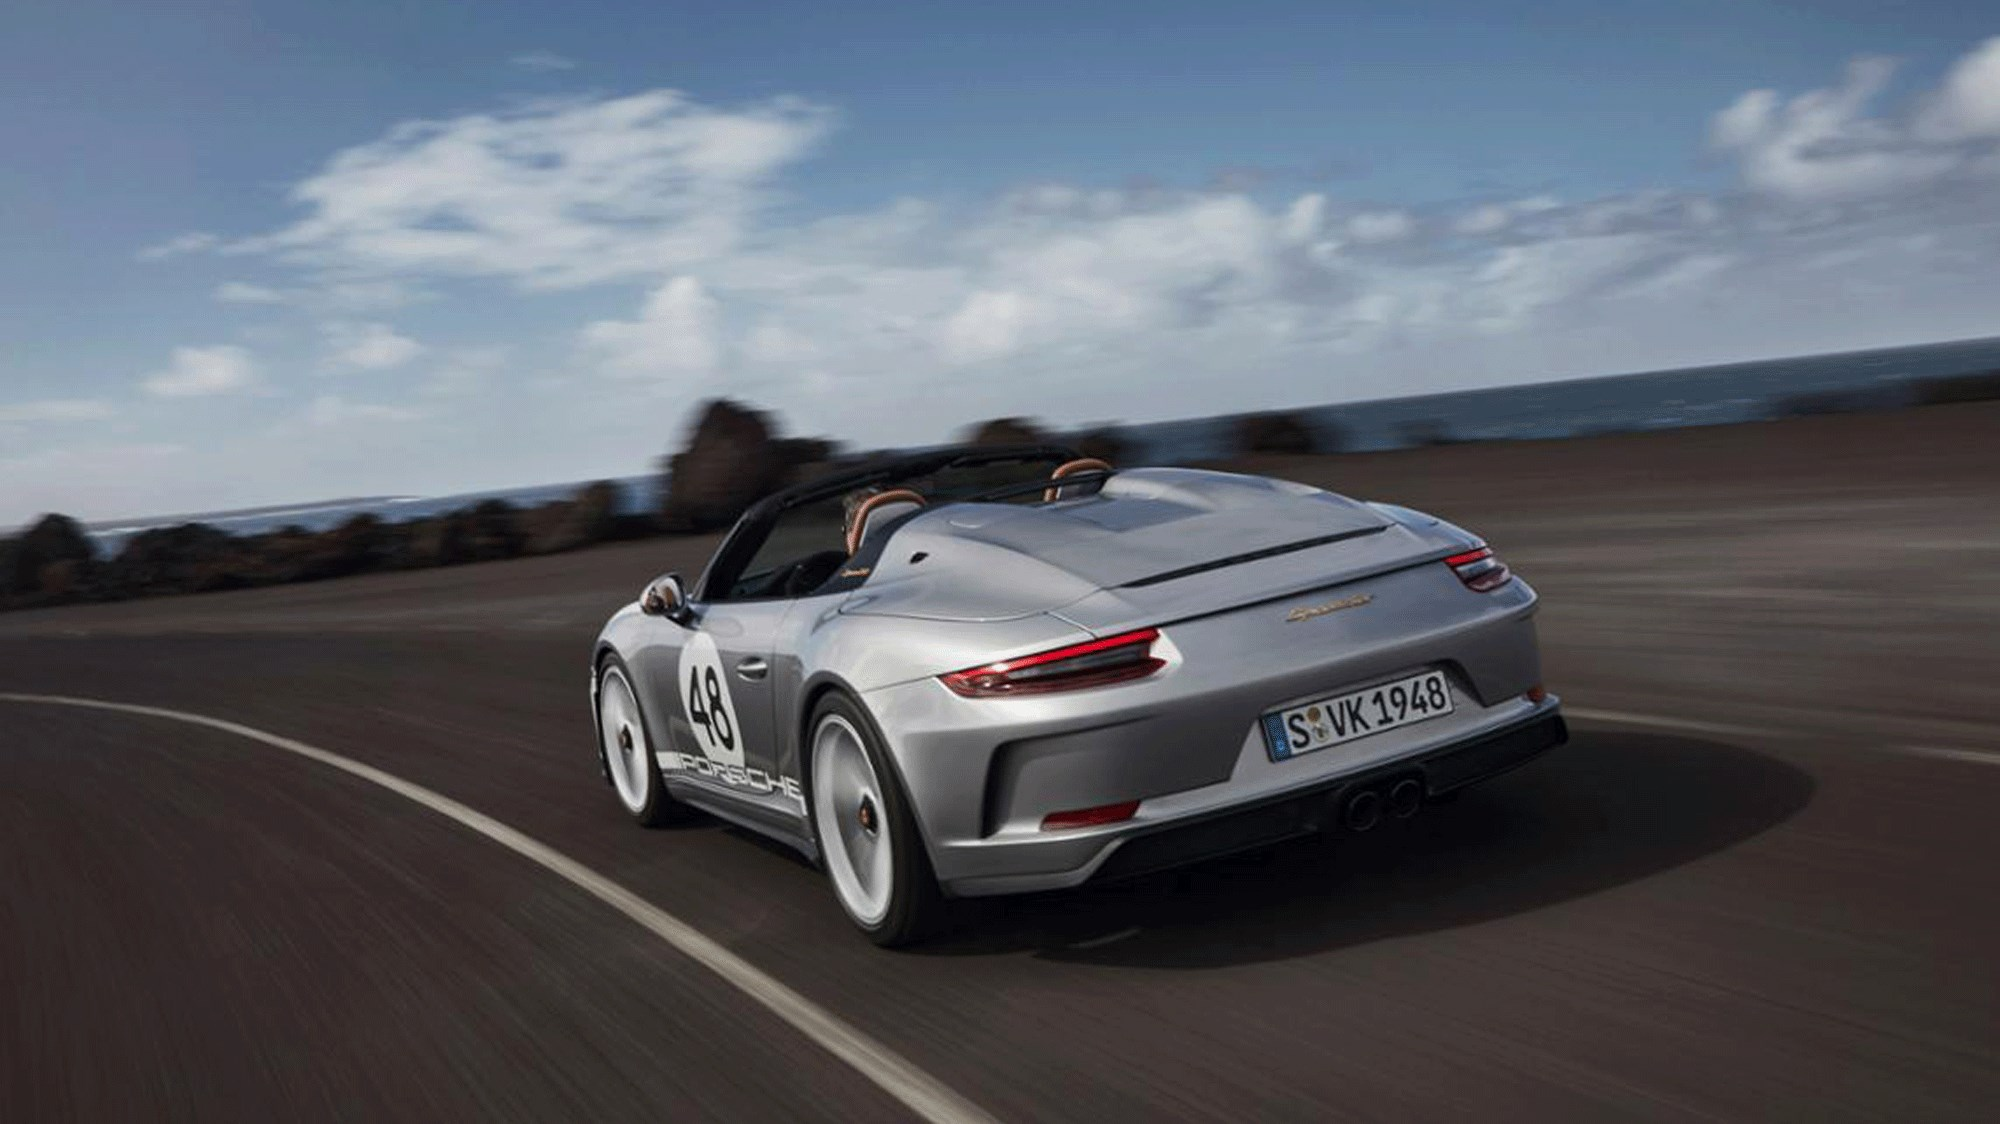 Porsche 911 Speedster Uk Specs And Price Of Limited 991 2 Revealed